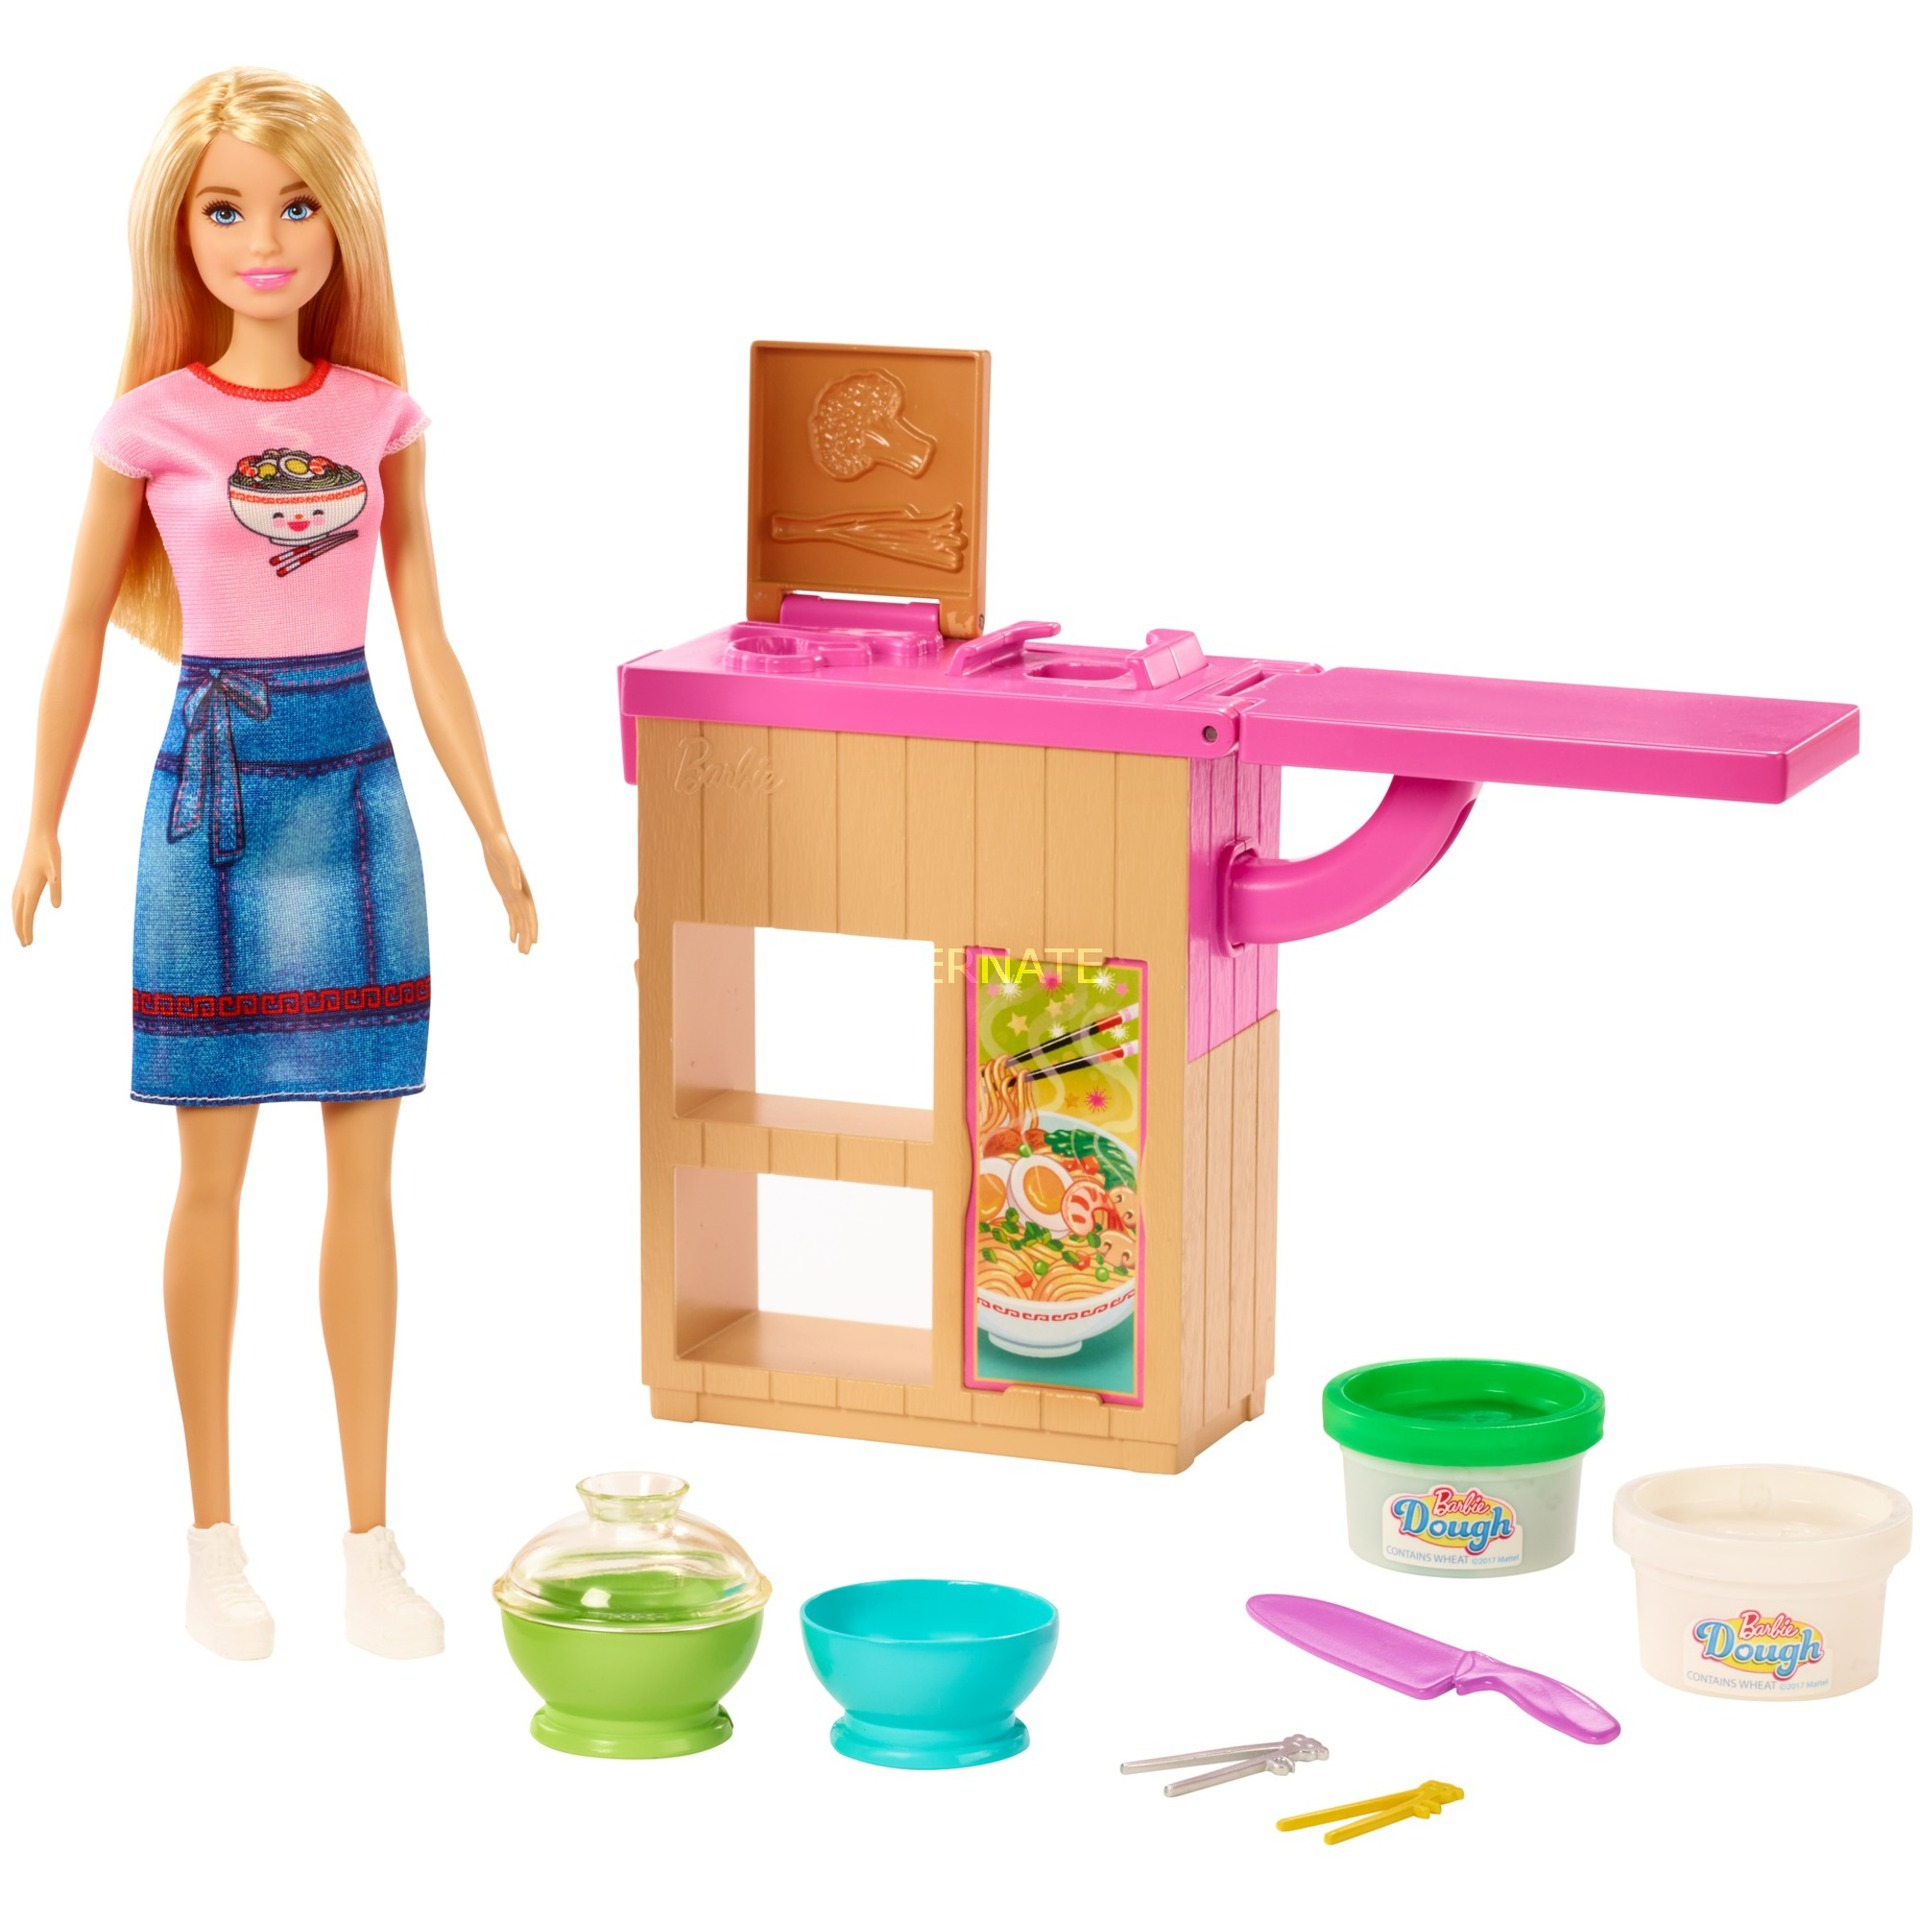 Barbie - Noodle Maker Doll and playset (GHK43)